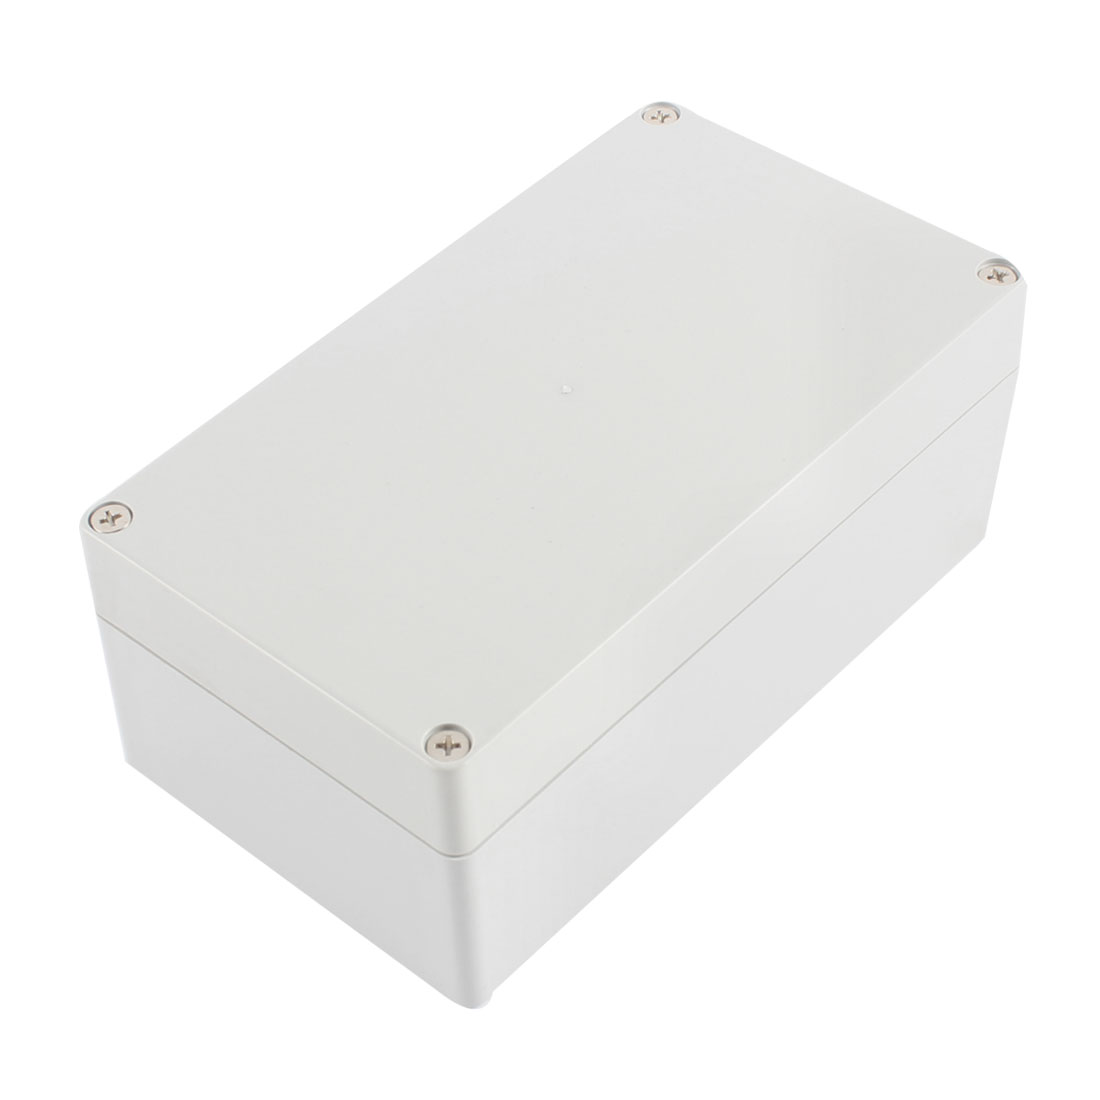 Waterproof Plastic Enclosure Case Box for Electronics Projects 158 x 90 x 60mm